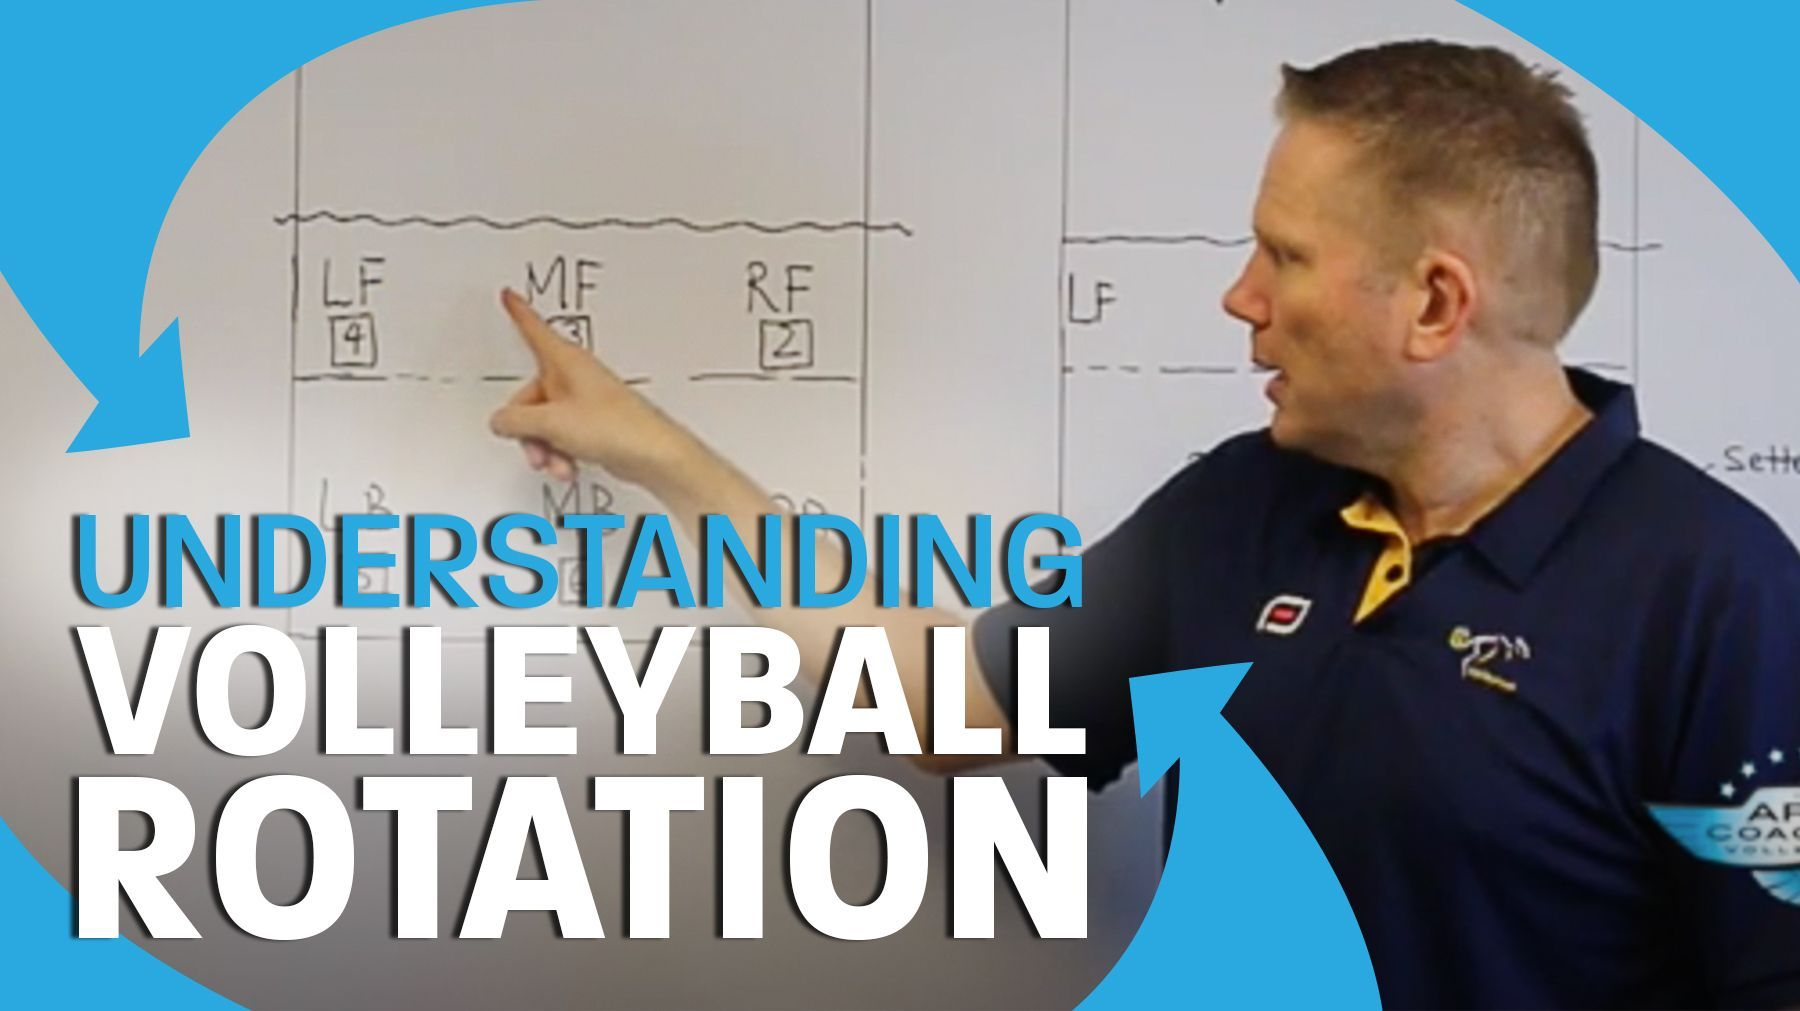 Volleyball Rotation The Basics The Art Of Coaching Volleyball Coaching Volleyball Volleyball Practice Volleyball Workouts